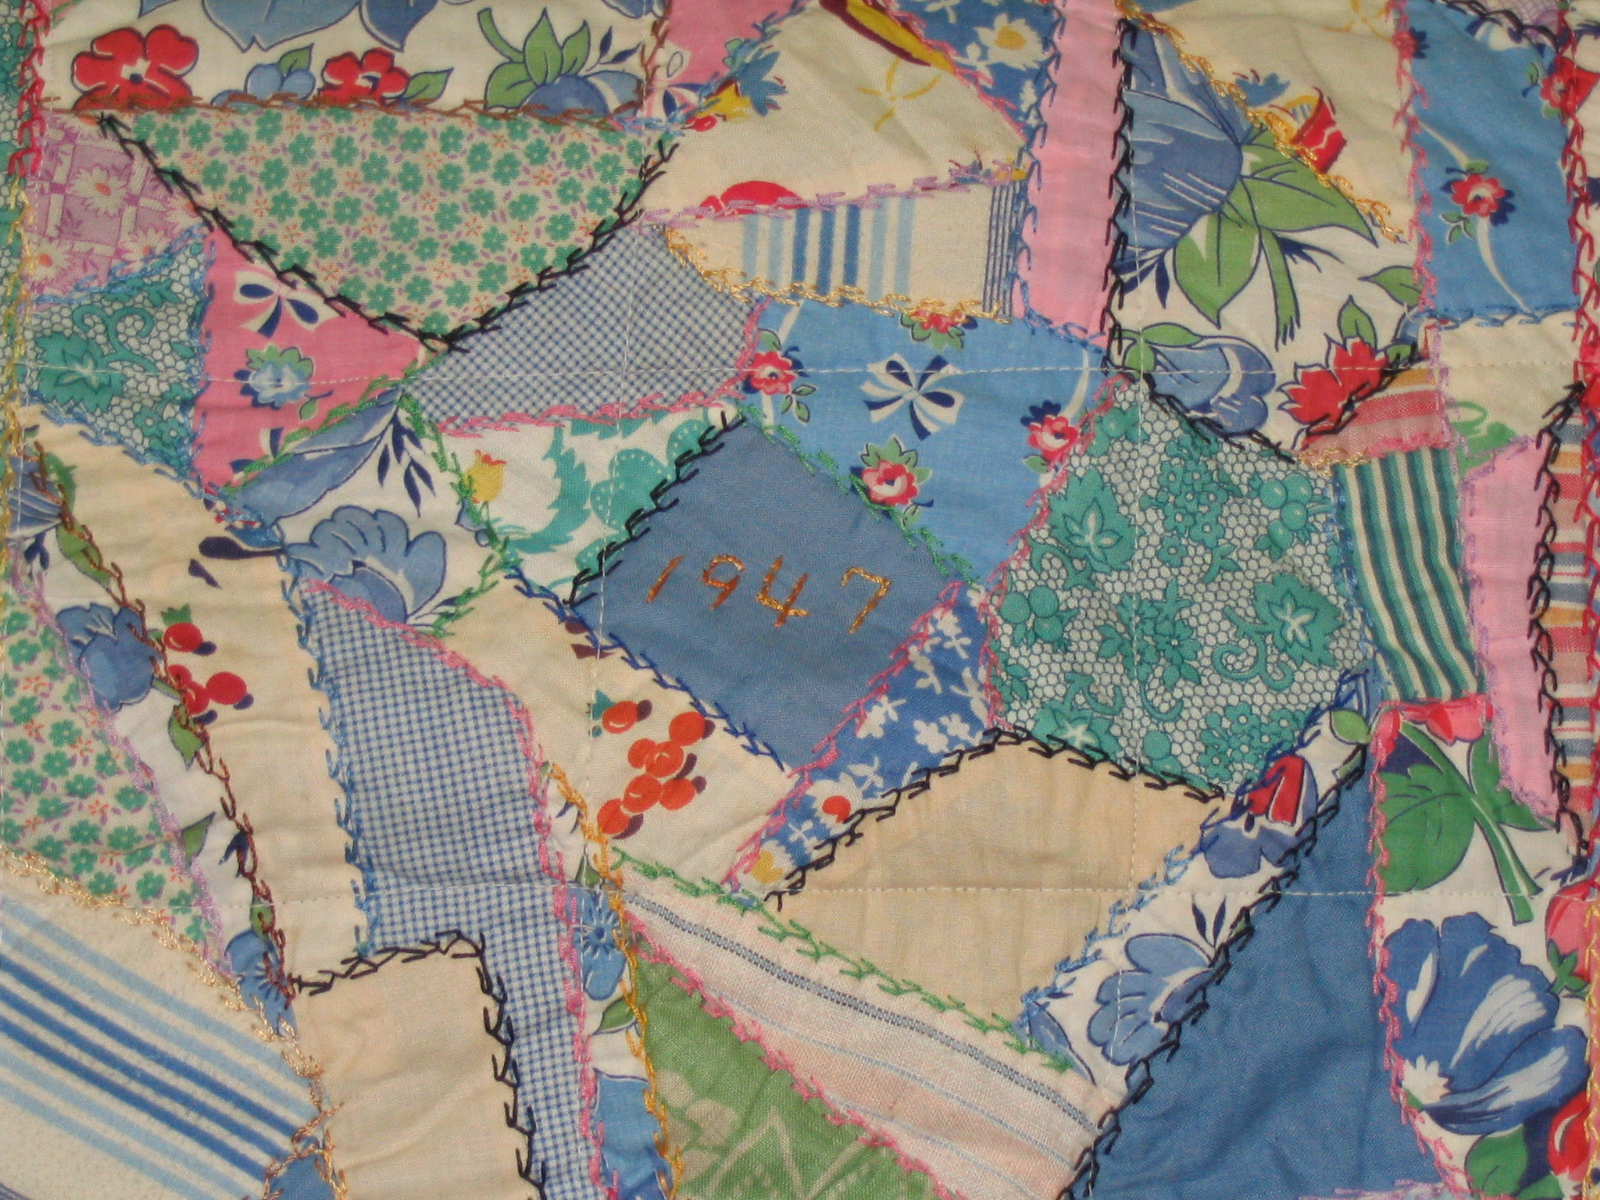 Close up of center of quilt